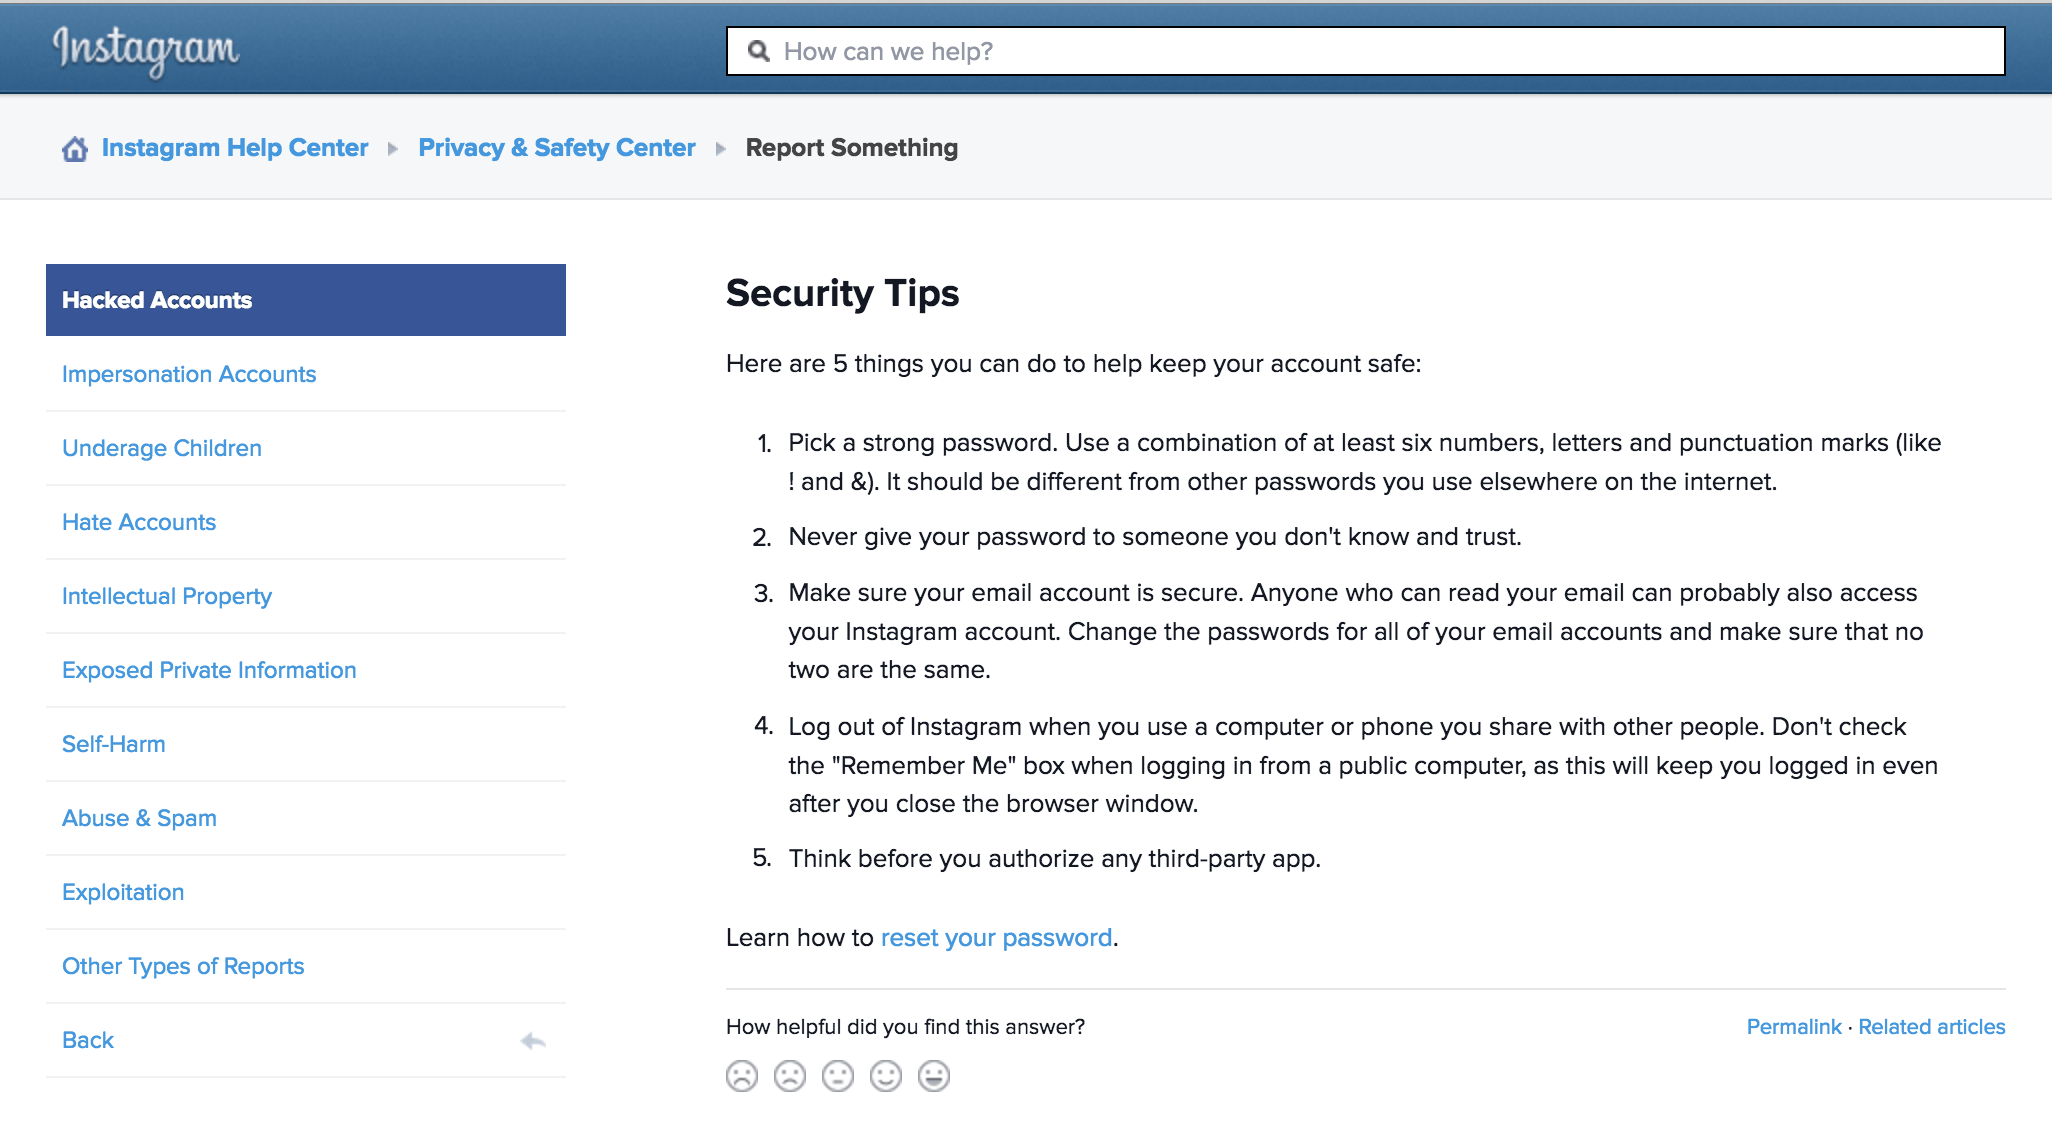 Is your Instagram account secure?